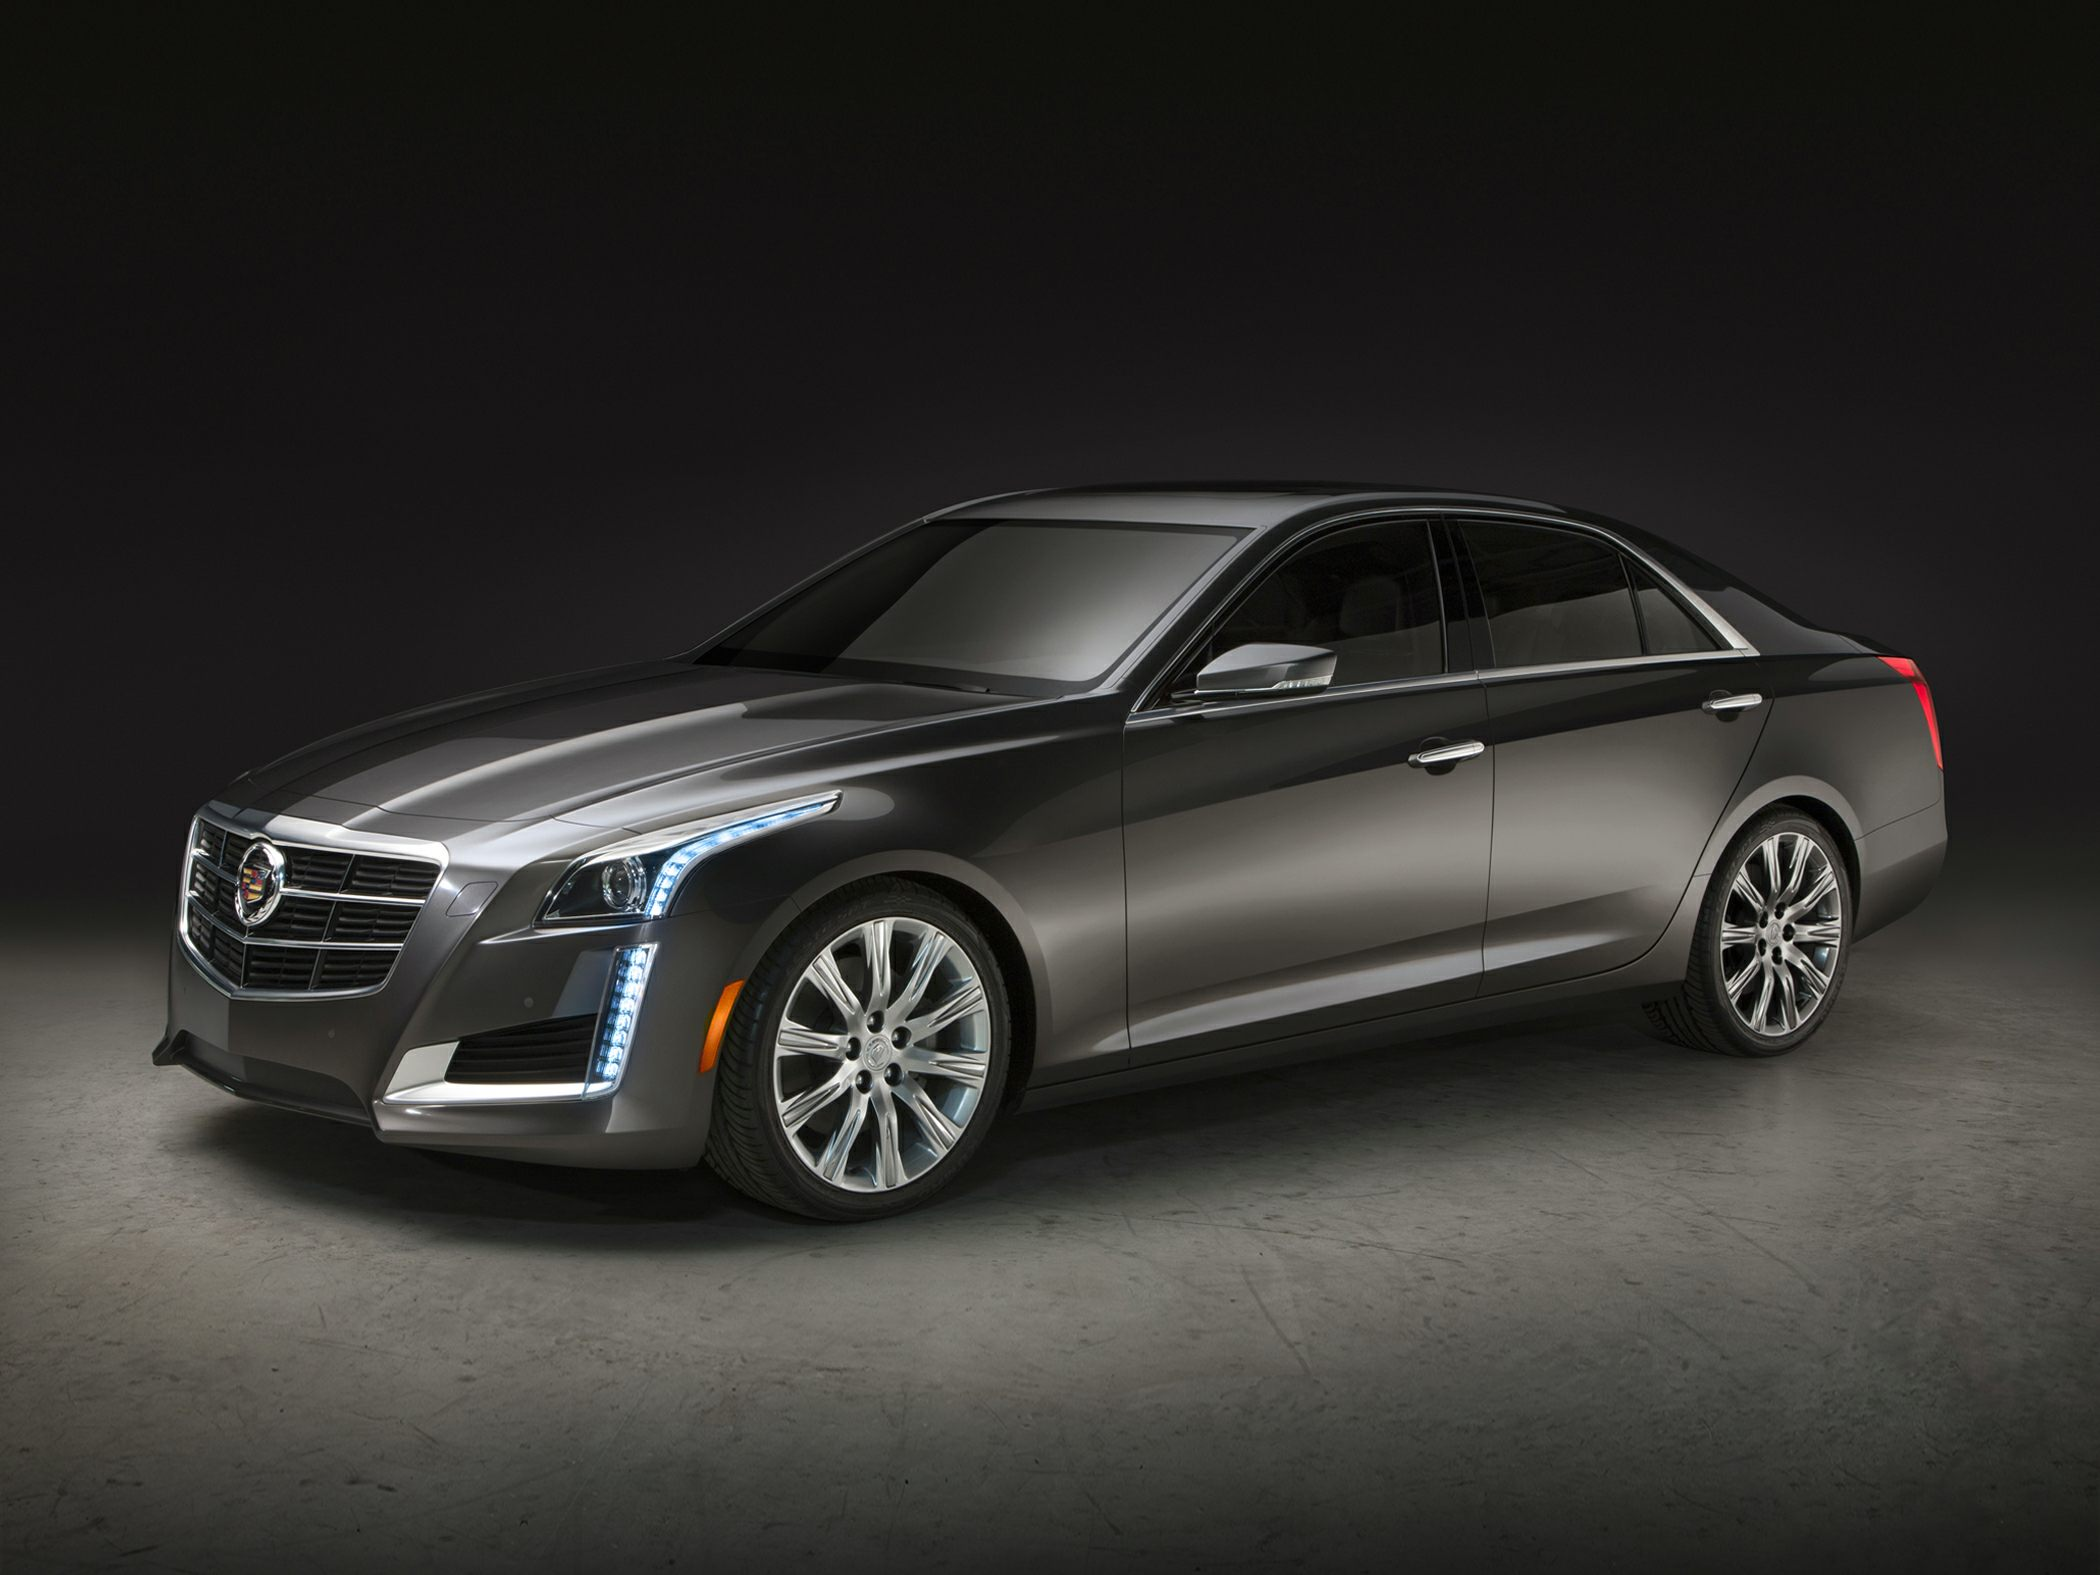 2014 Cadillac CTS Glamour